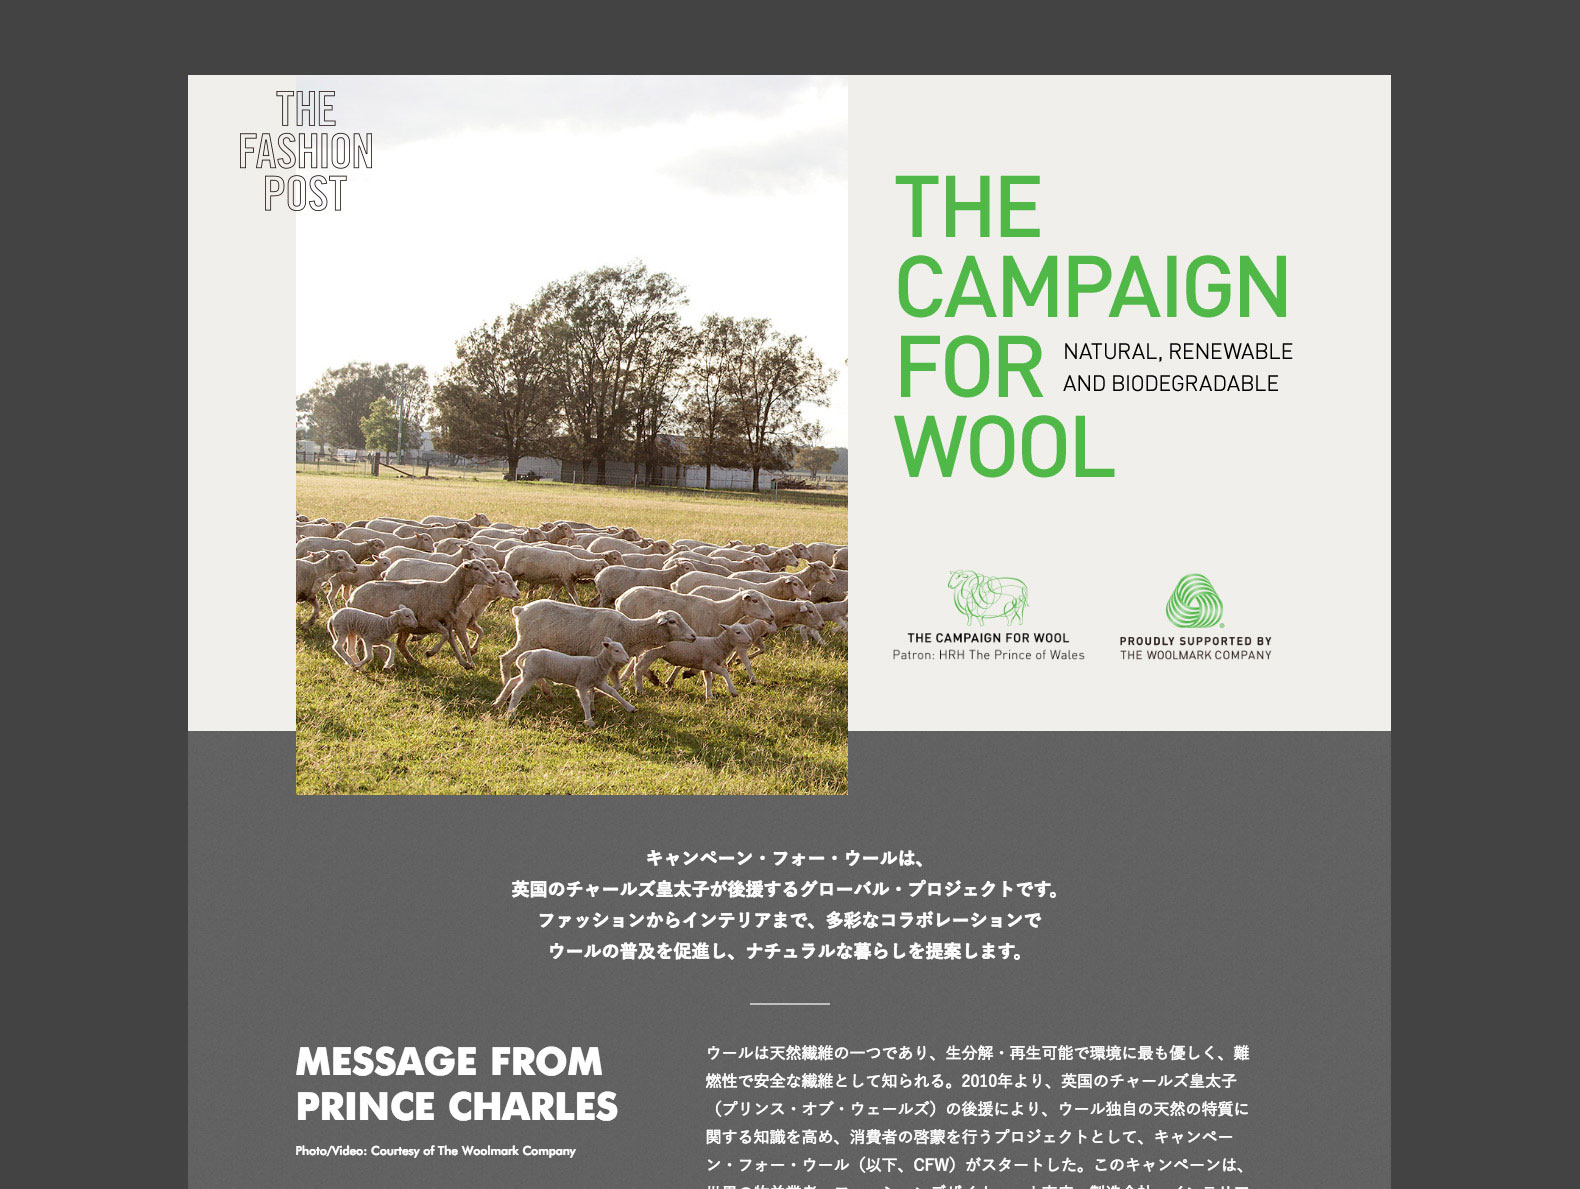 『THE CAMPAIGN FOR WOOL』